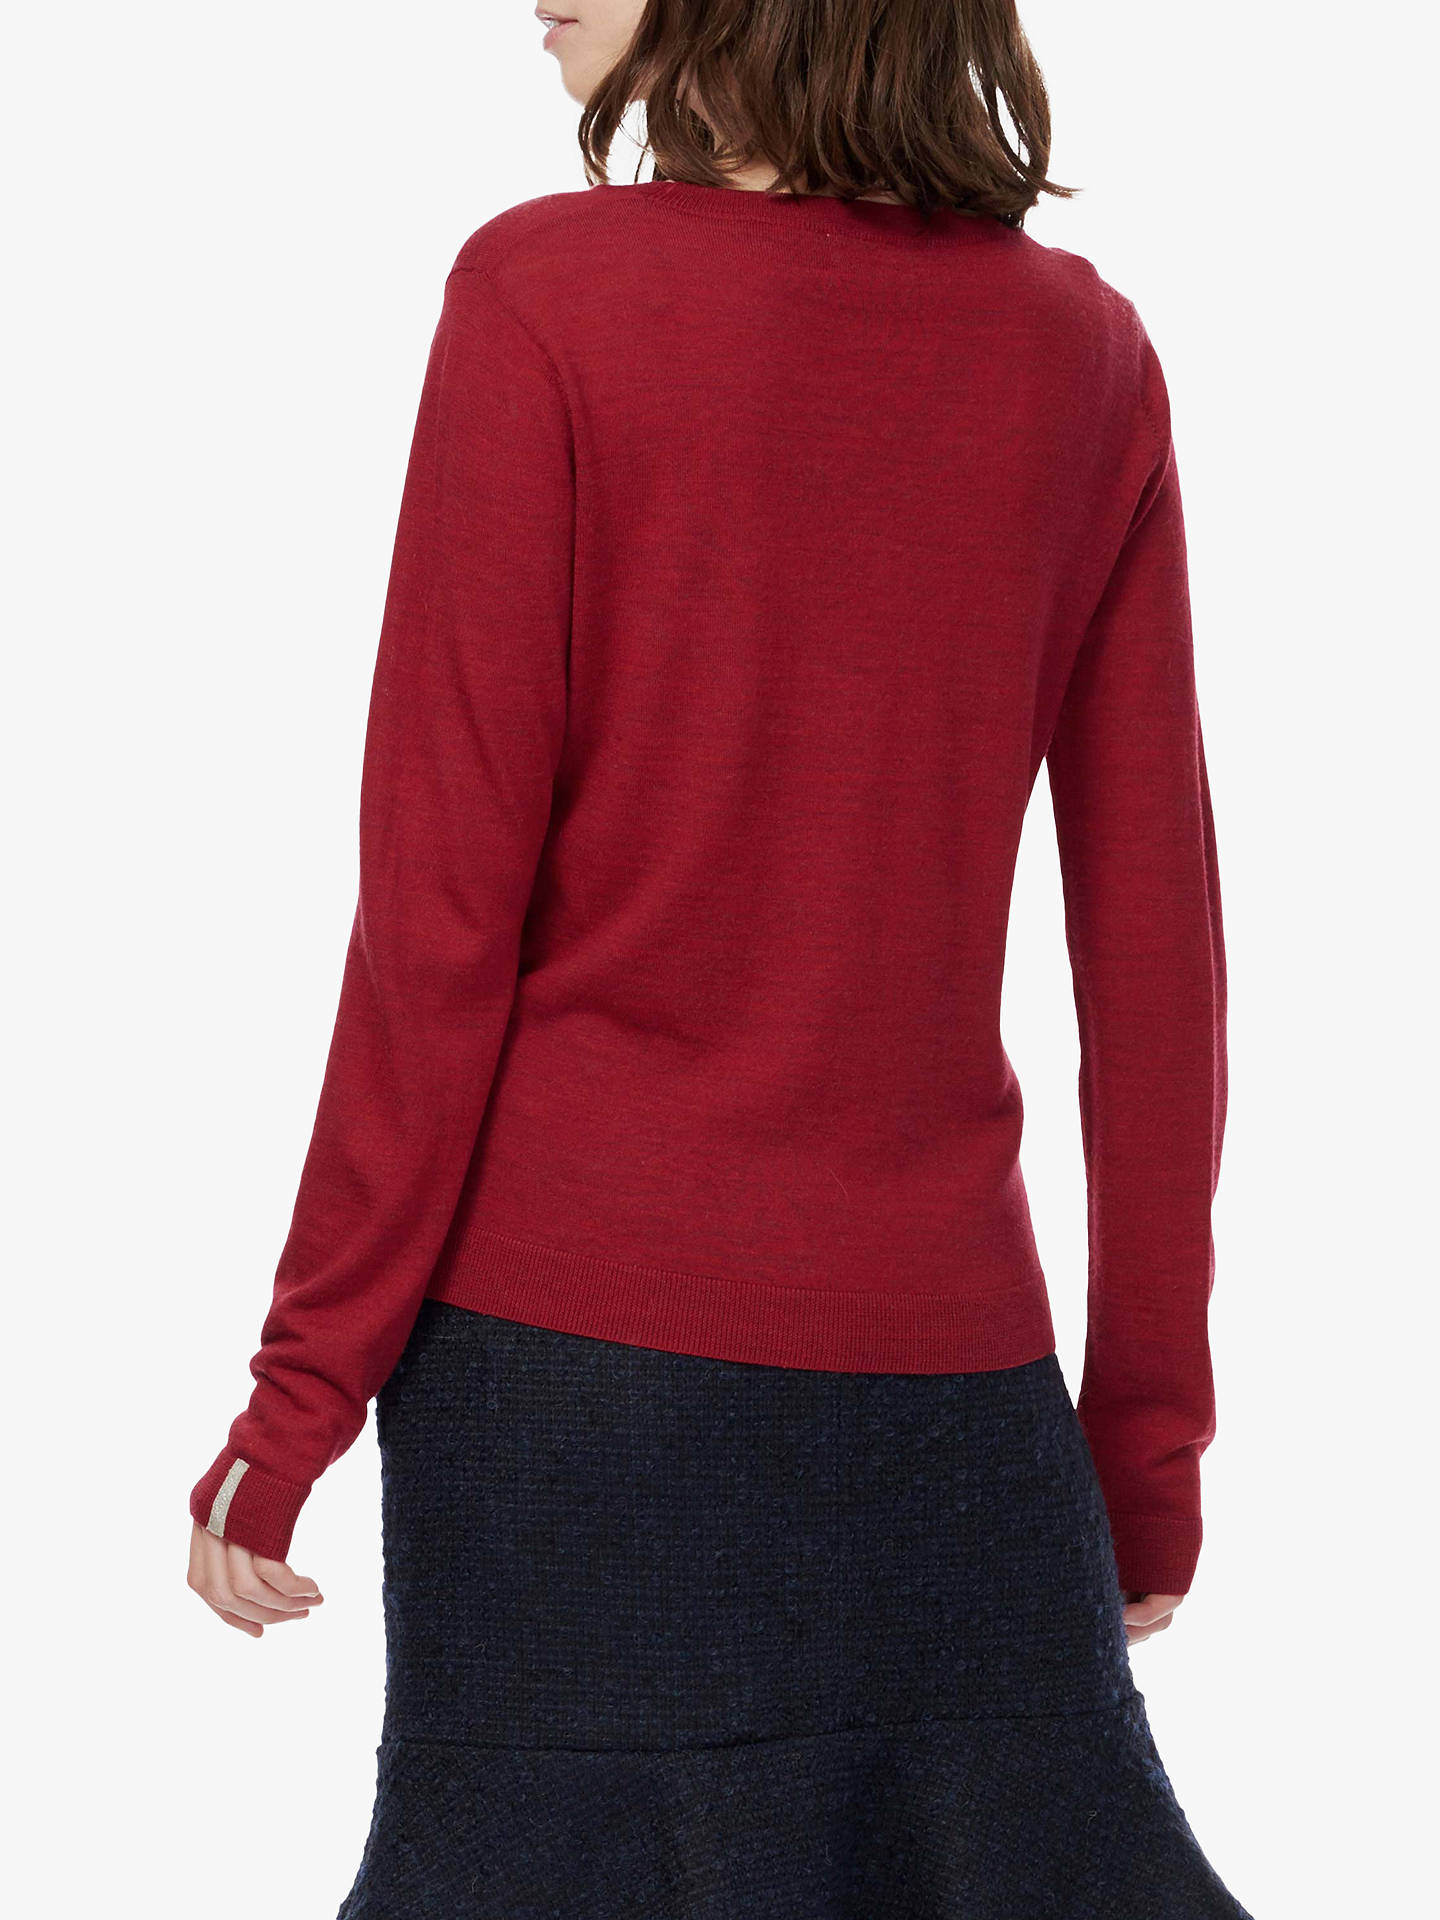 BuyBrora Embroidered Typography Merino Jumper, Ruby, 8 Online at johnlewis.com